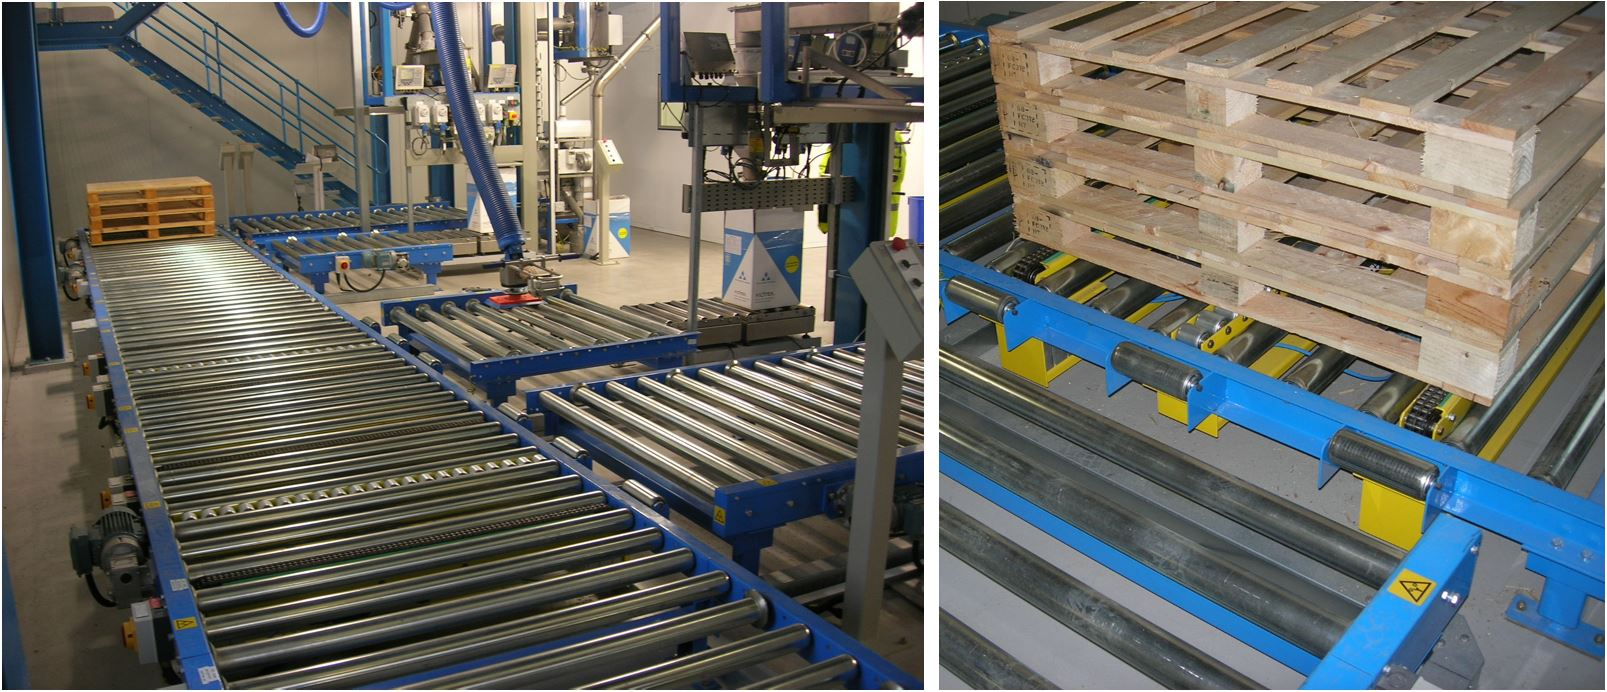 February 2019 Newsletter – Pallet Handling Roller Conveyor Systems